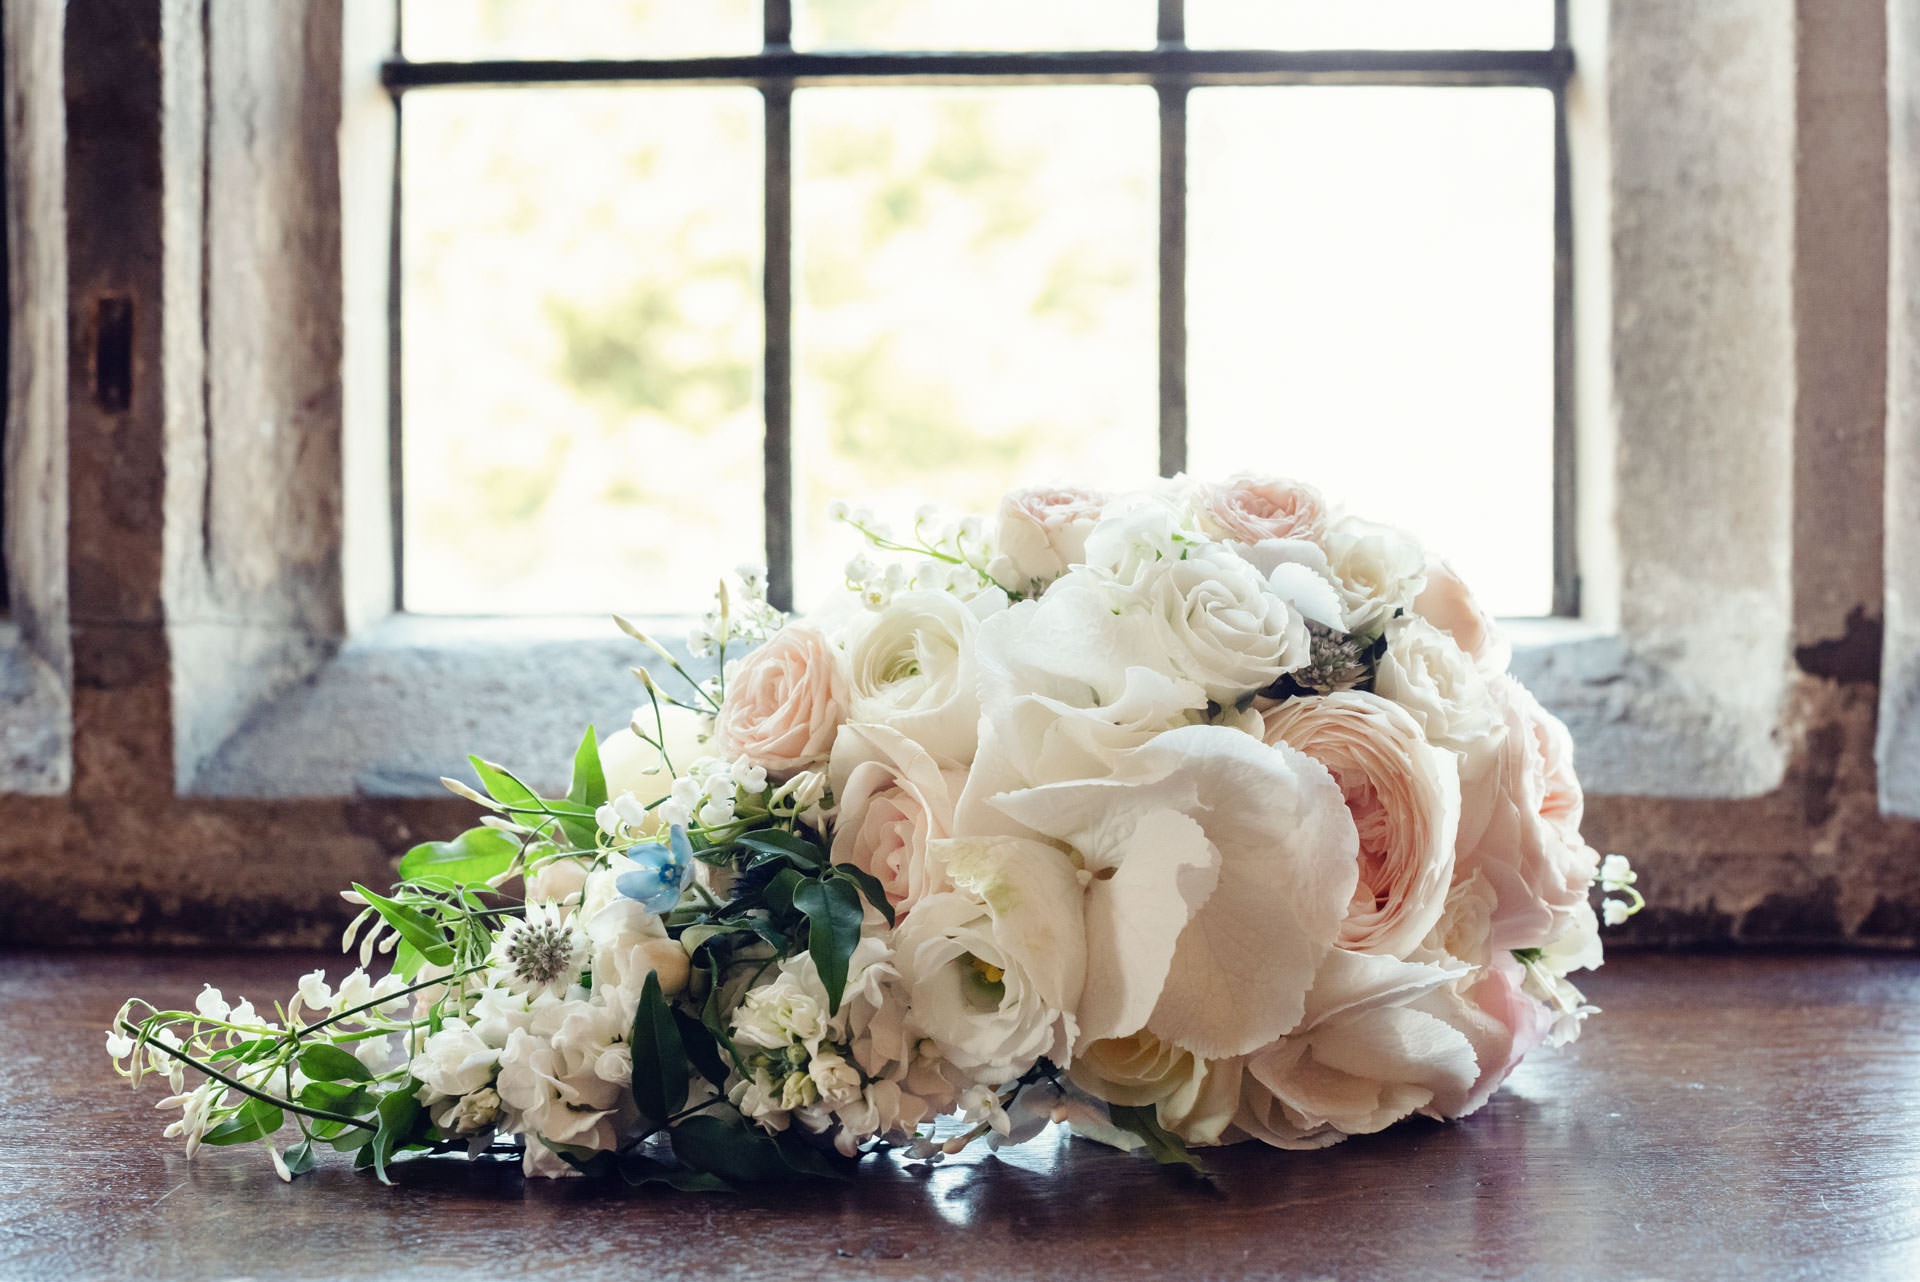 Charlotte's beautiful bridal bouquet